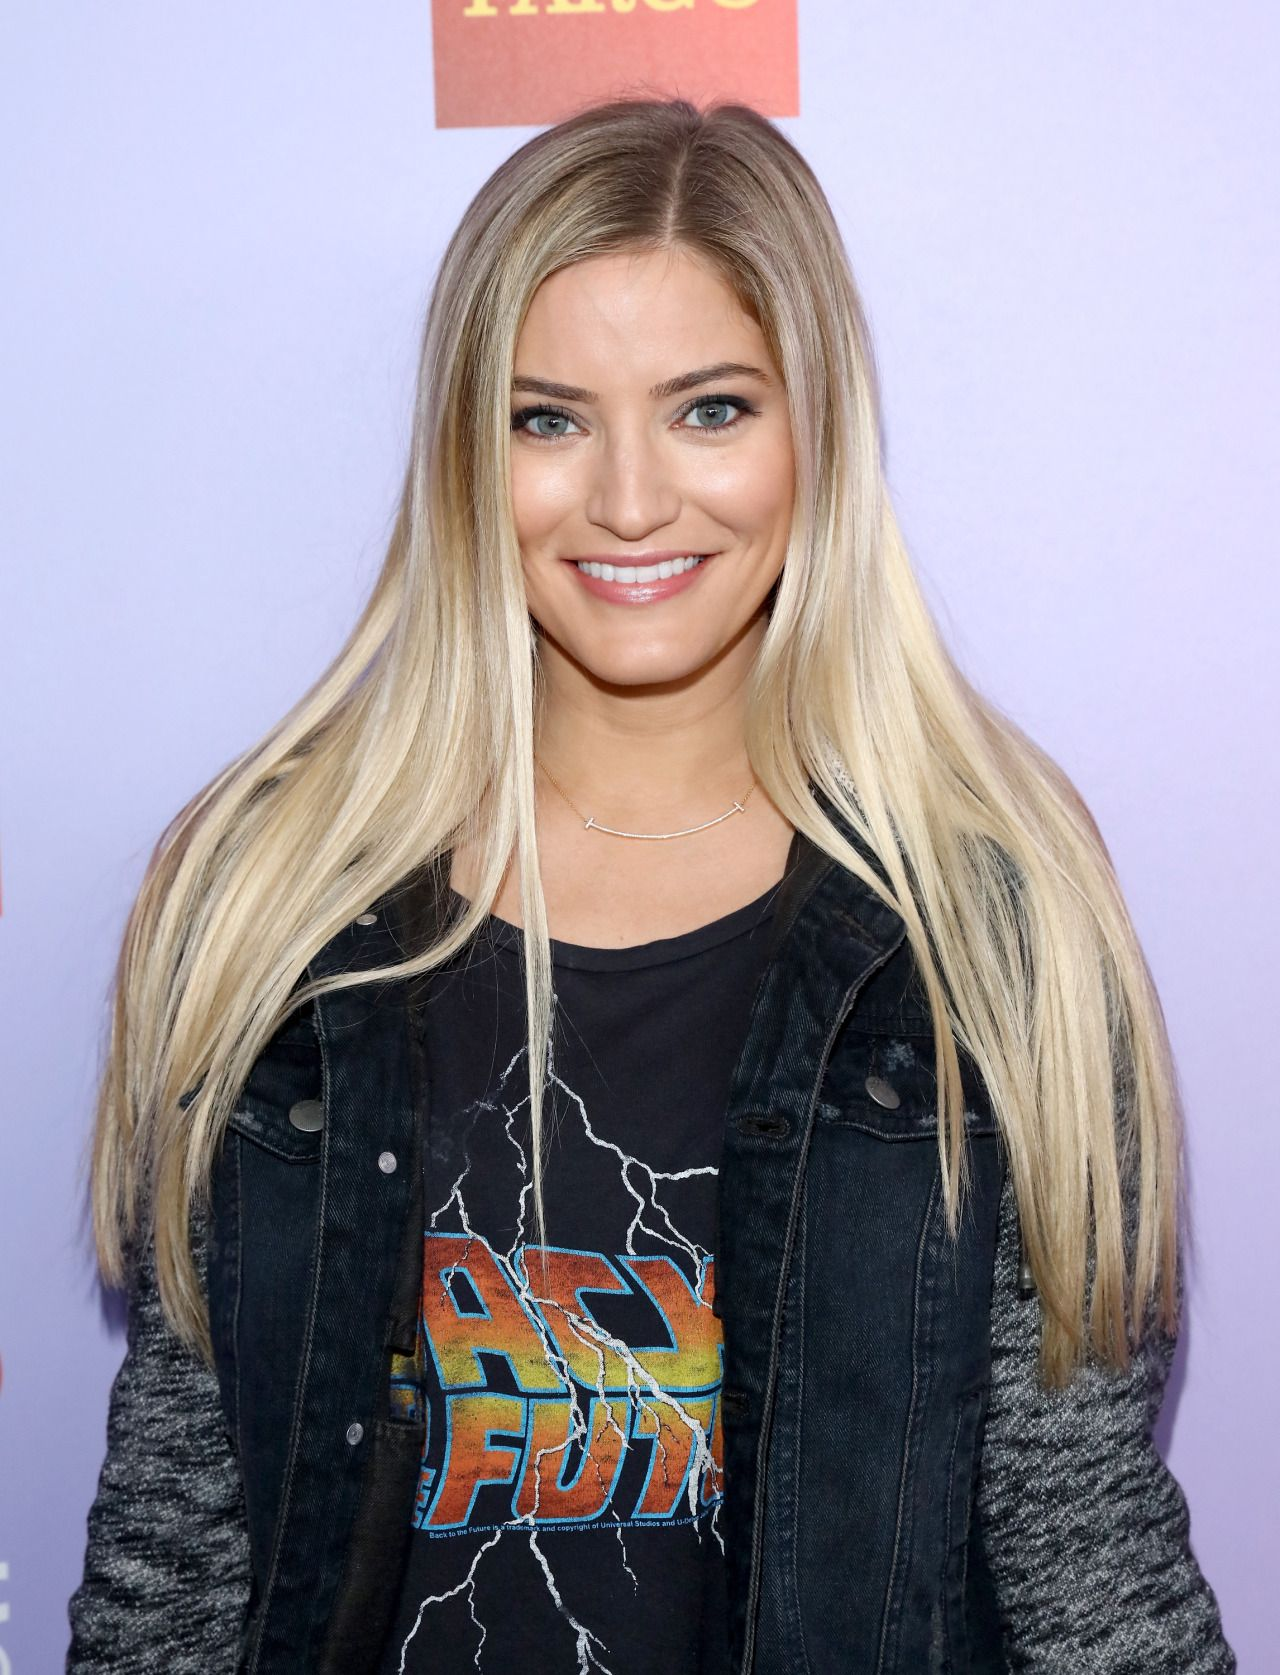 Discussion on this topic: Kyla (b. 1981), ijustine/